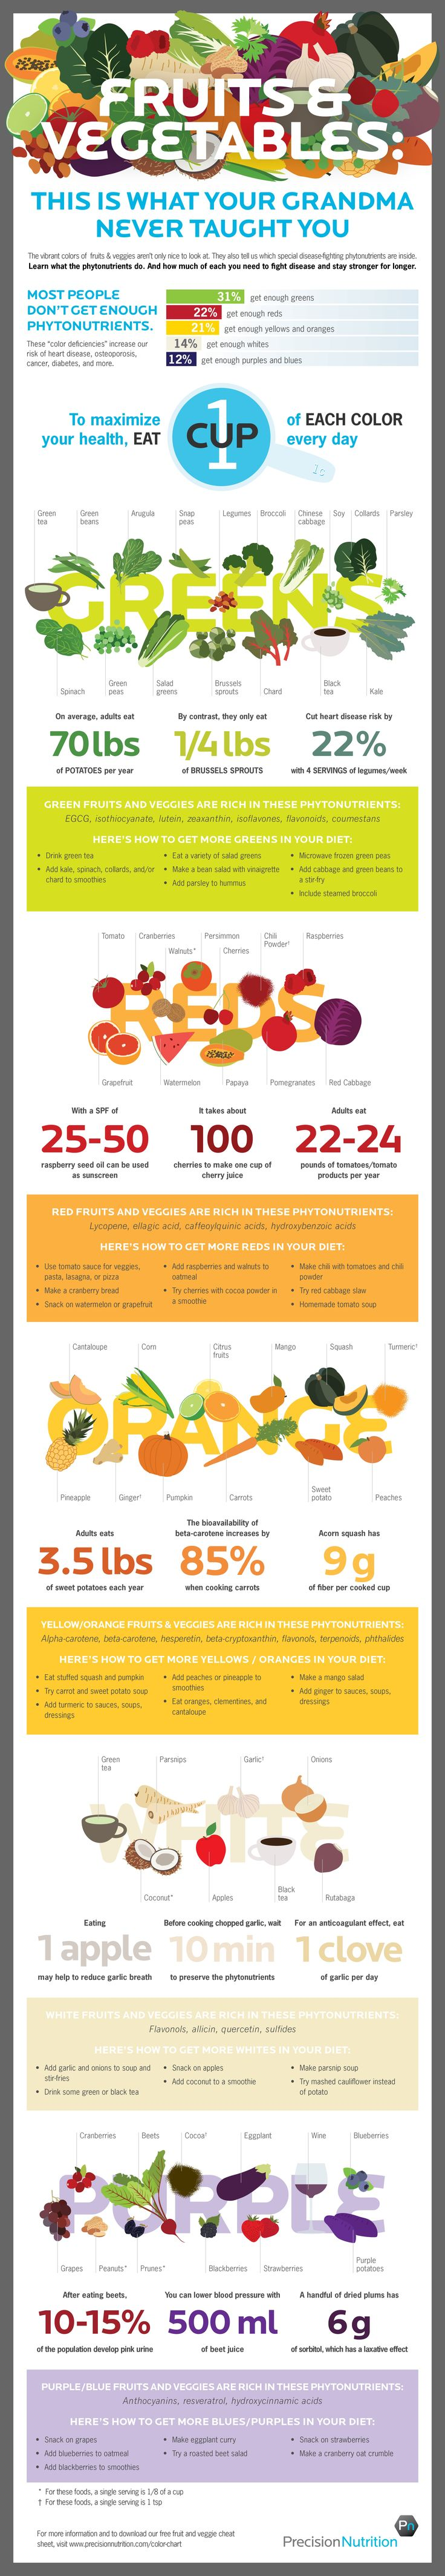 Fruit and Vegetable Infographic Fruits and vegetables: This is what your grandma never taught you. [Infographic]